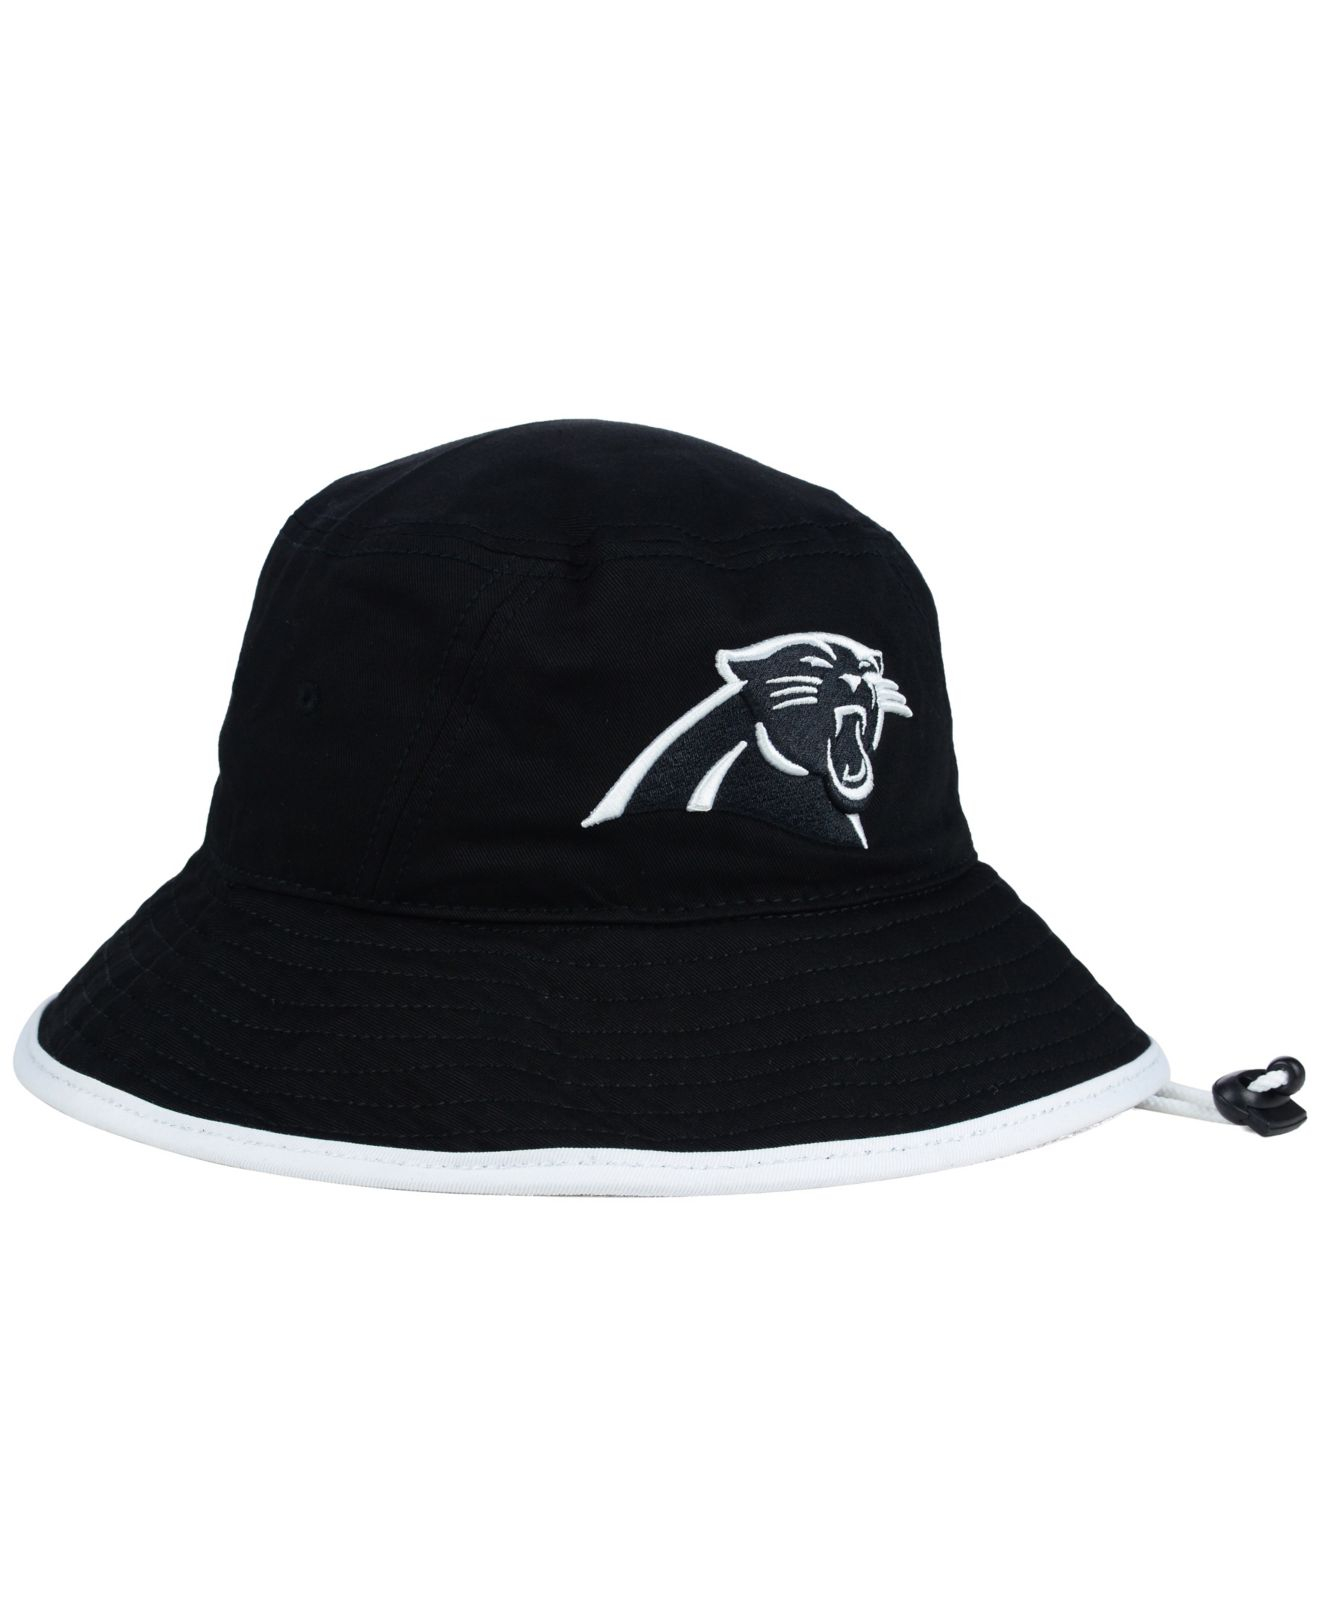 b0c4e4003907e ... inexpensive lyst ktz carolina panthers nfl black white bucket hat in  black 16c5f 88fba